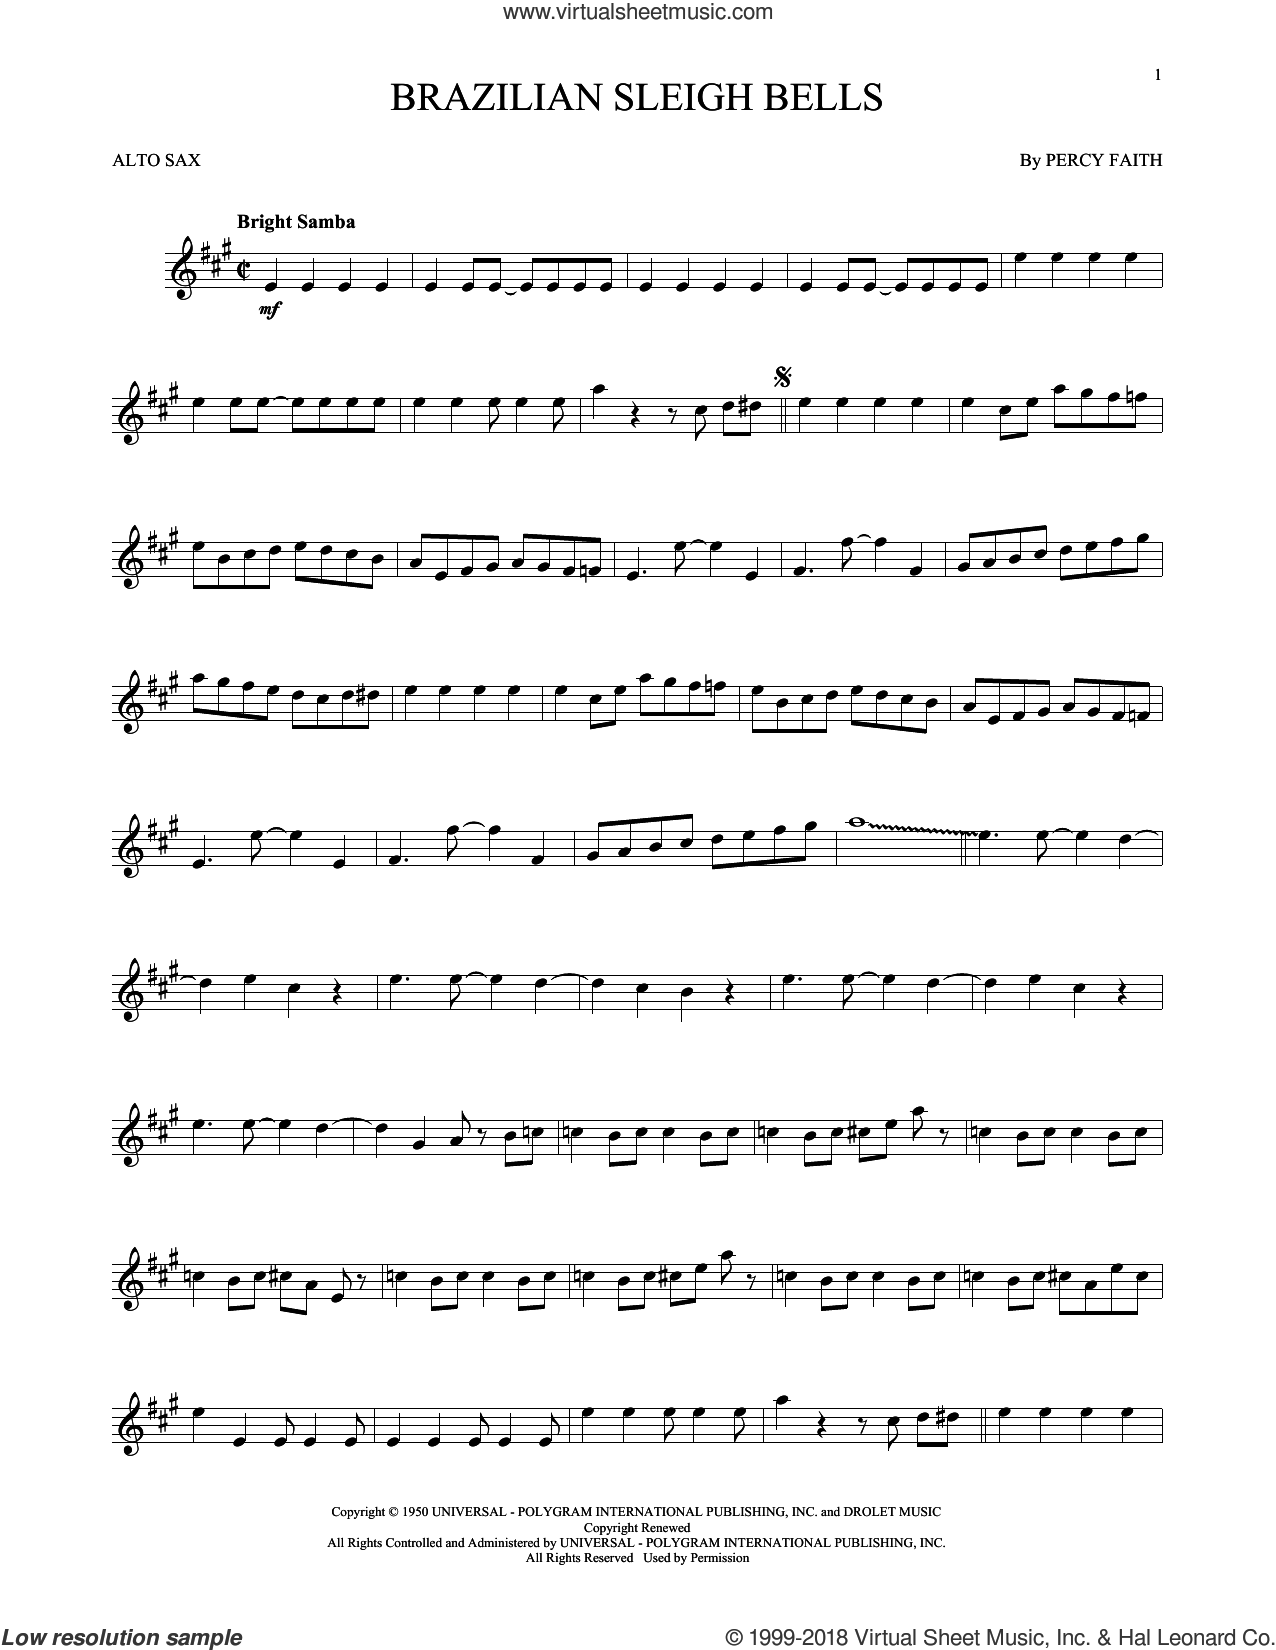 Brazilian Sleigh Bells sheet music for alto saxophone solo by Percy Faith, intermediate skill level